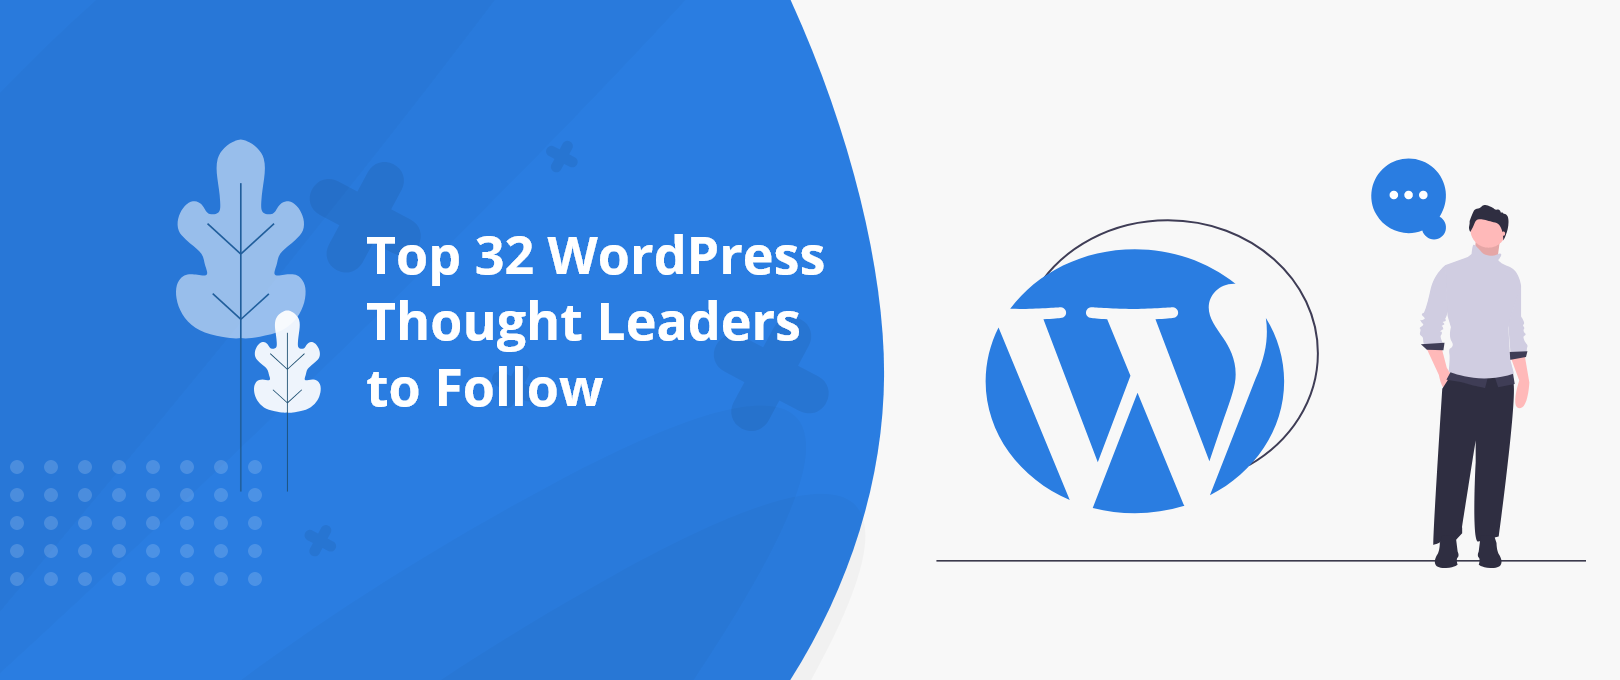 Top 32 WordPress Thought Leaders to Follow